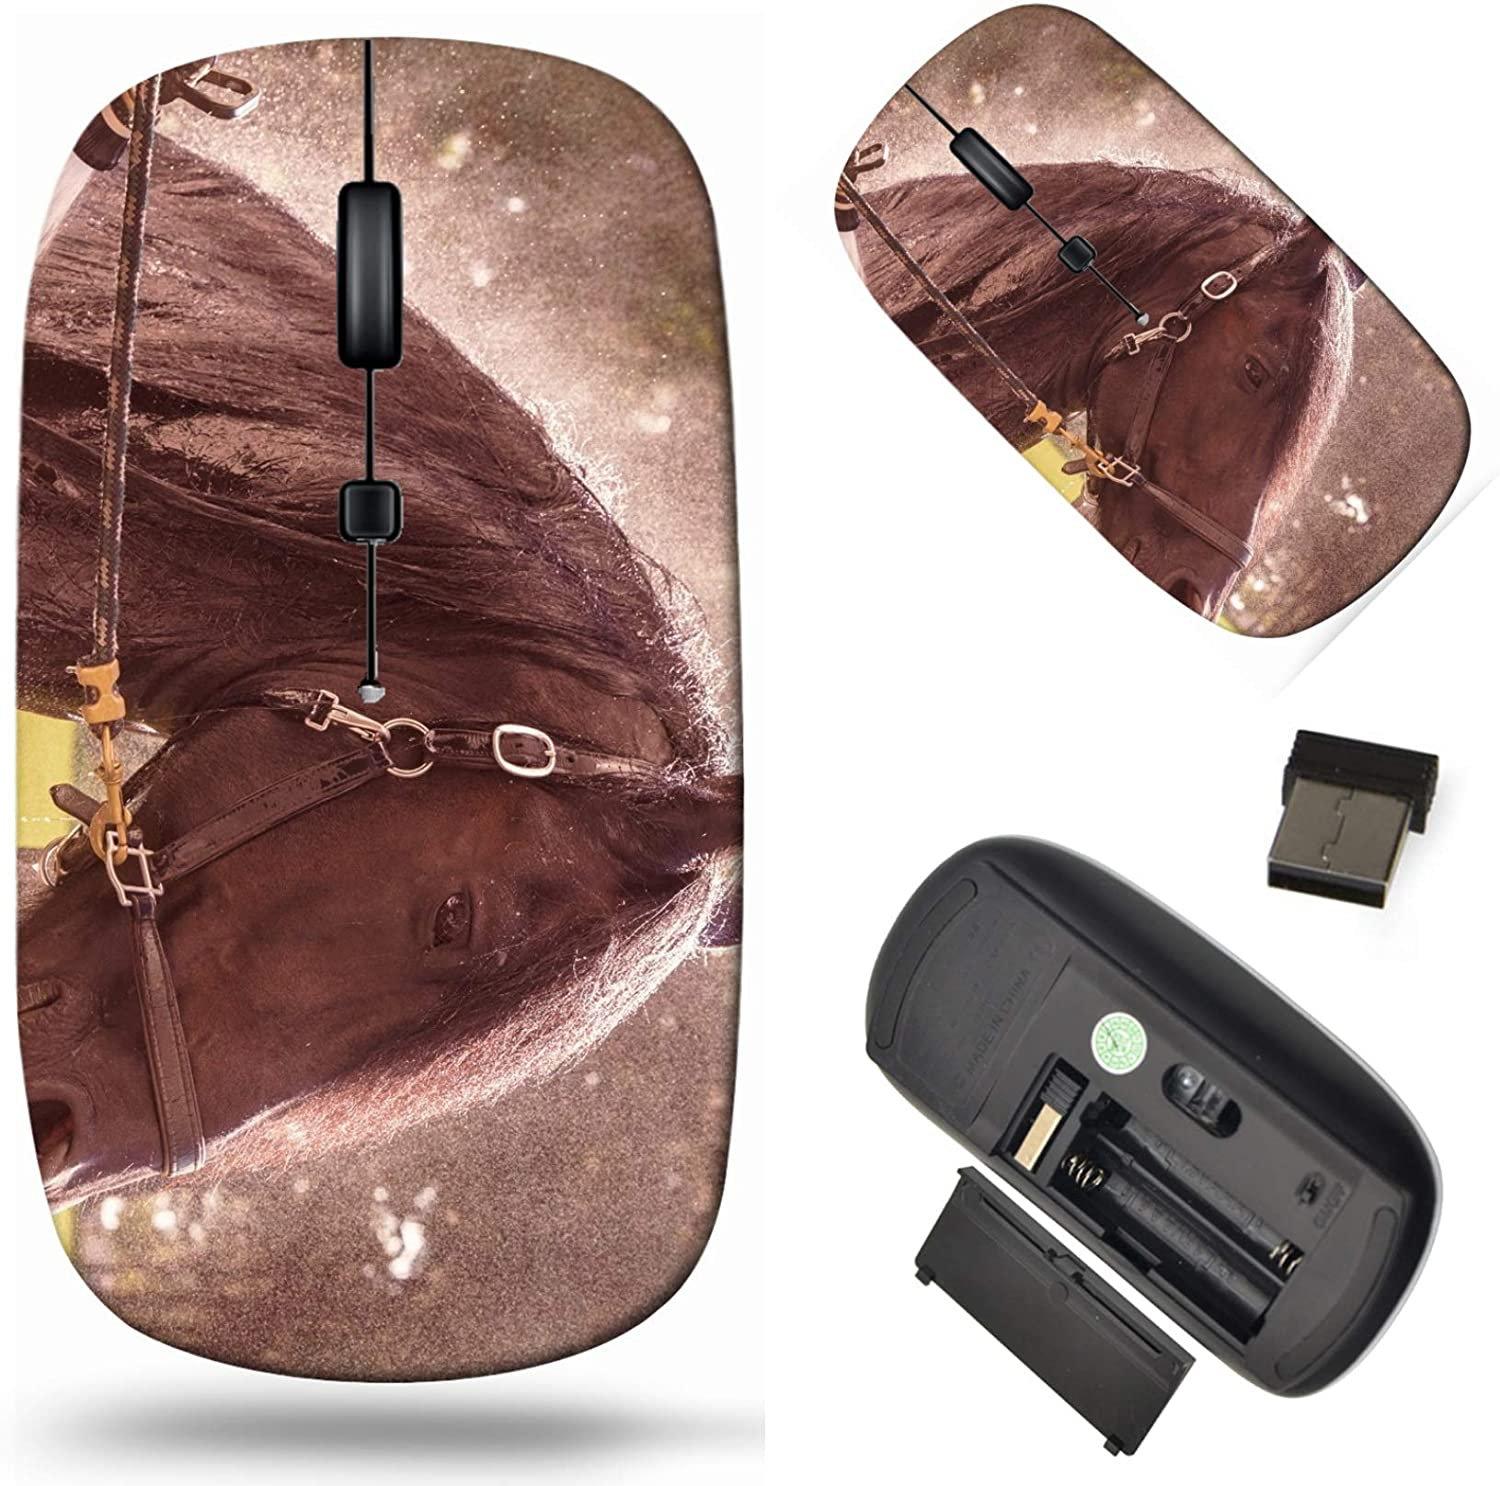 Wireless Computer Mouse Limited time for free shipping 2.4G with Cor Daily bargain sale Receiver Laptop USB